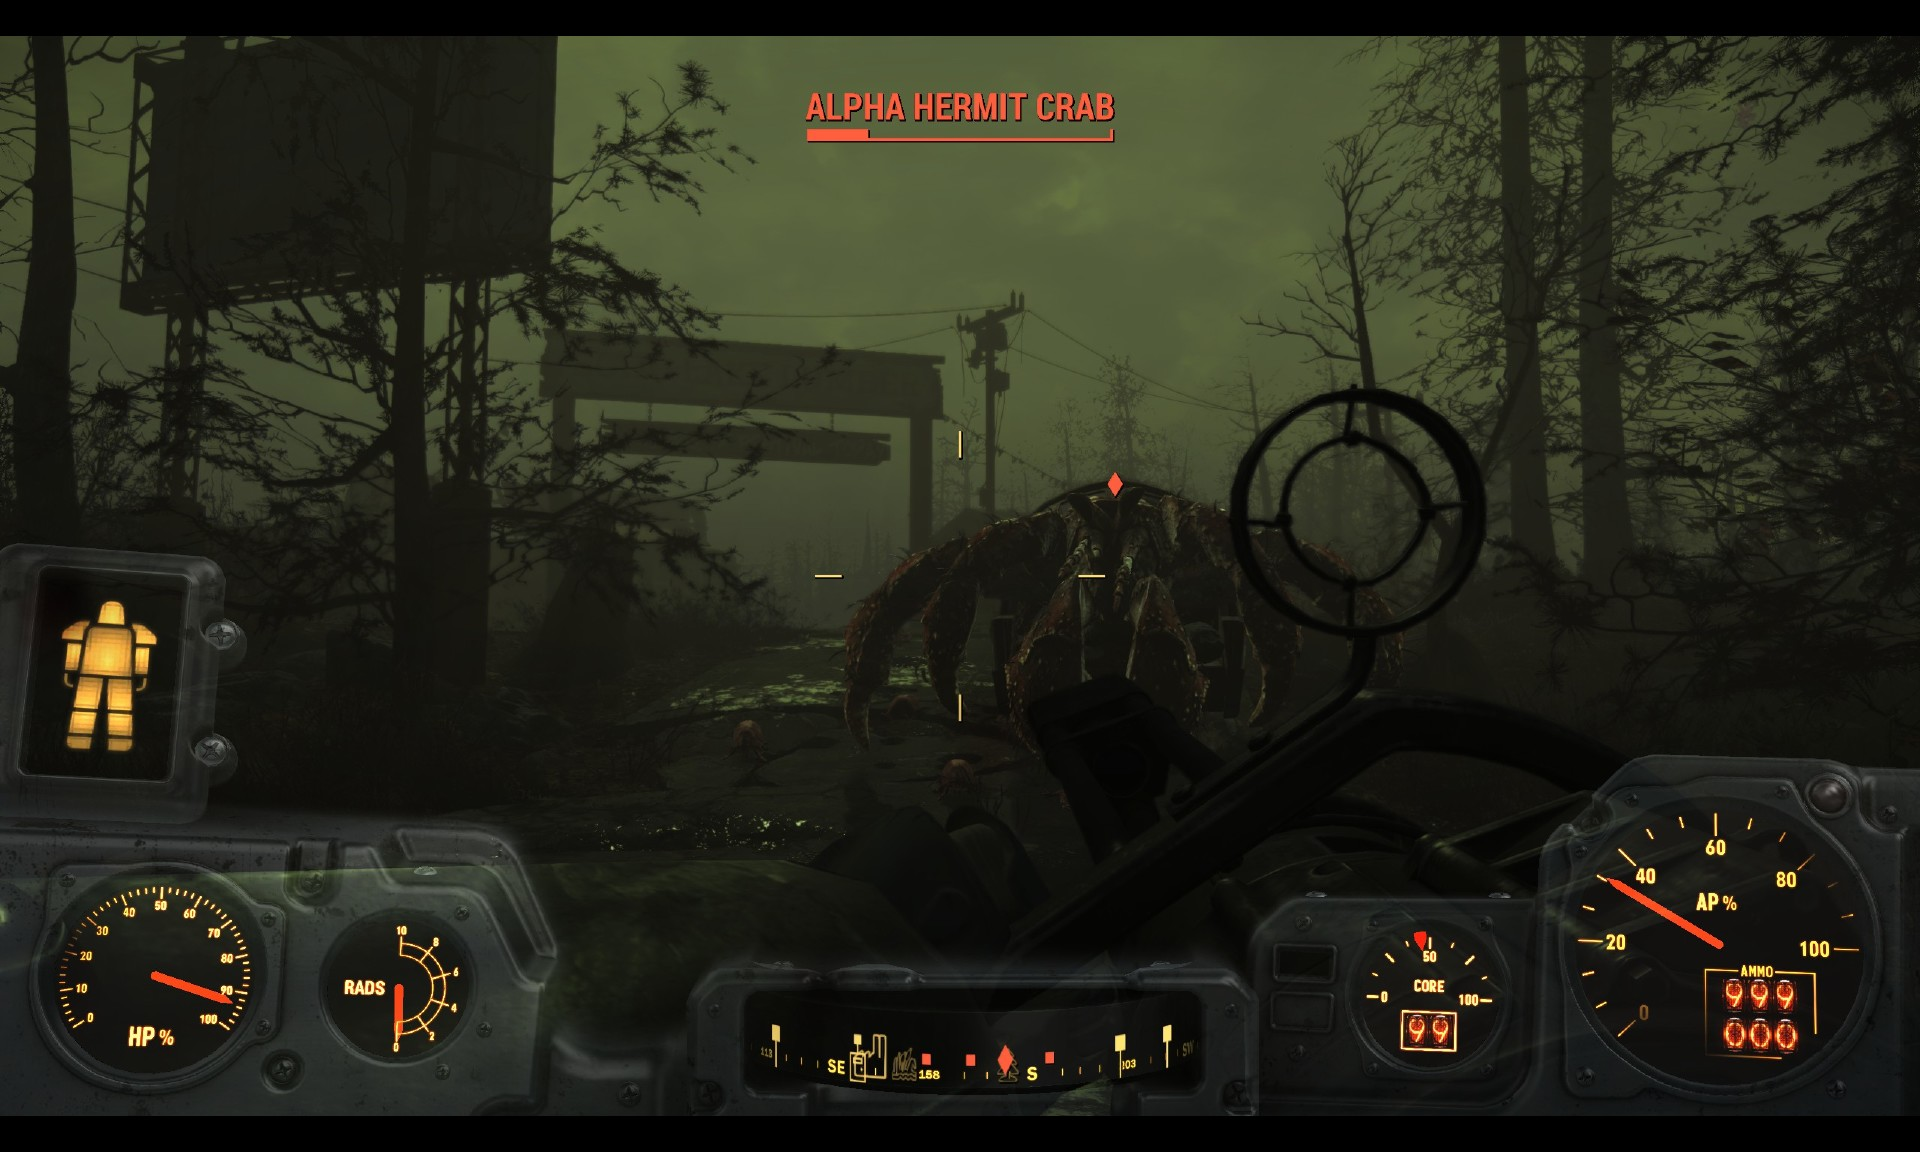 Far Harbor ?interpolation=lanczos-none&output-format=jpeg&output-quality=95&fit=inside|2048:1152&composite-to=*,*|2048:1152&background-color=black